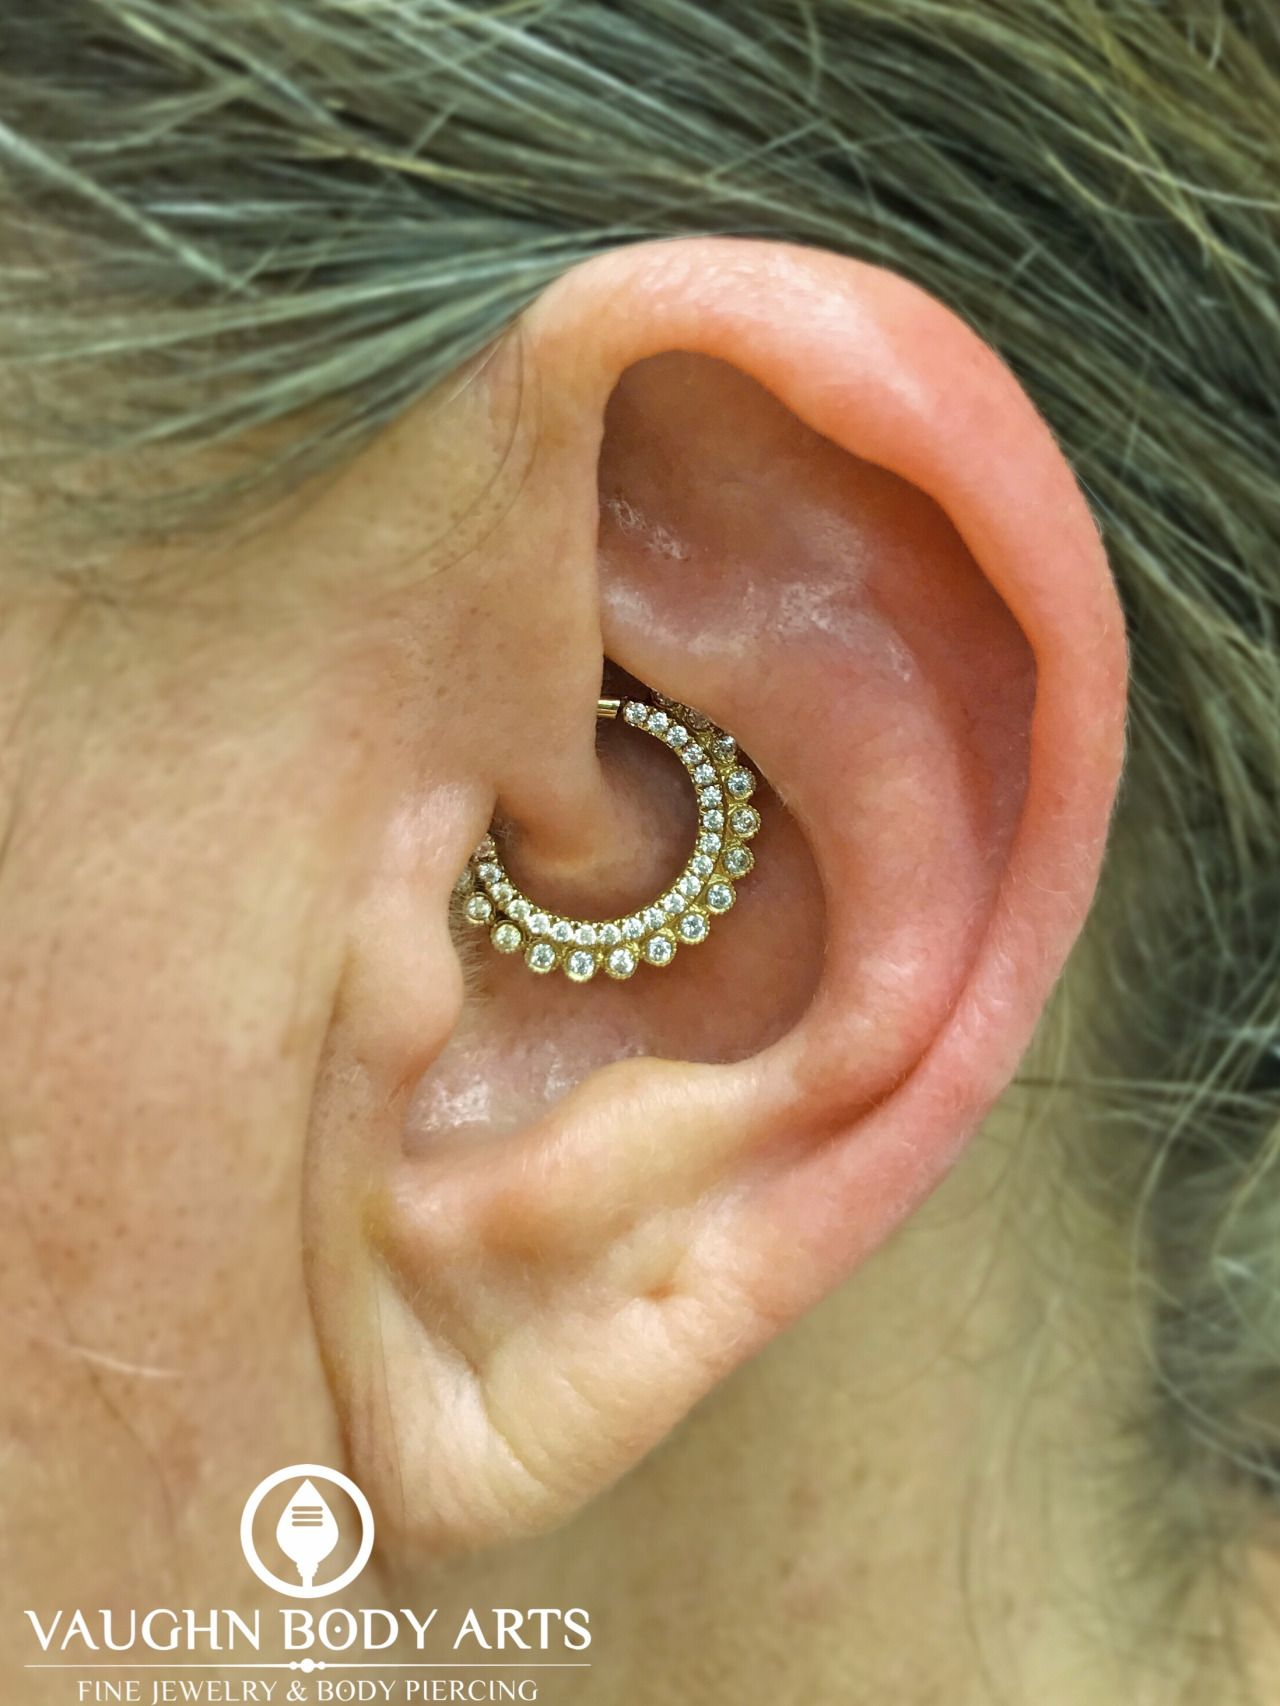 Body piercing jewelry types  We had the best clients today Thanks so much for keeping us so busy